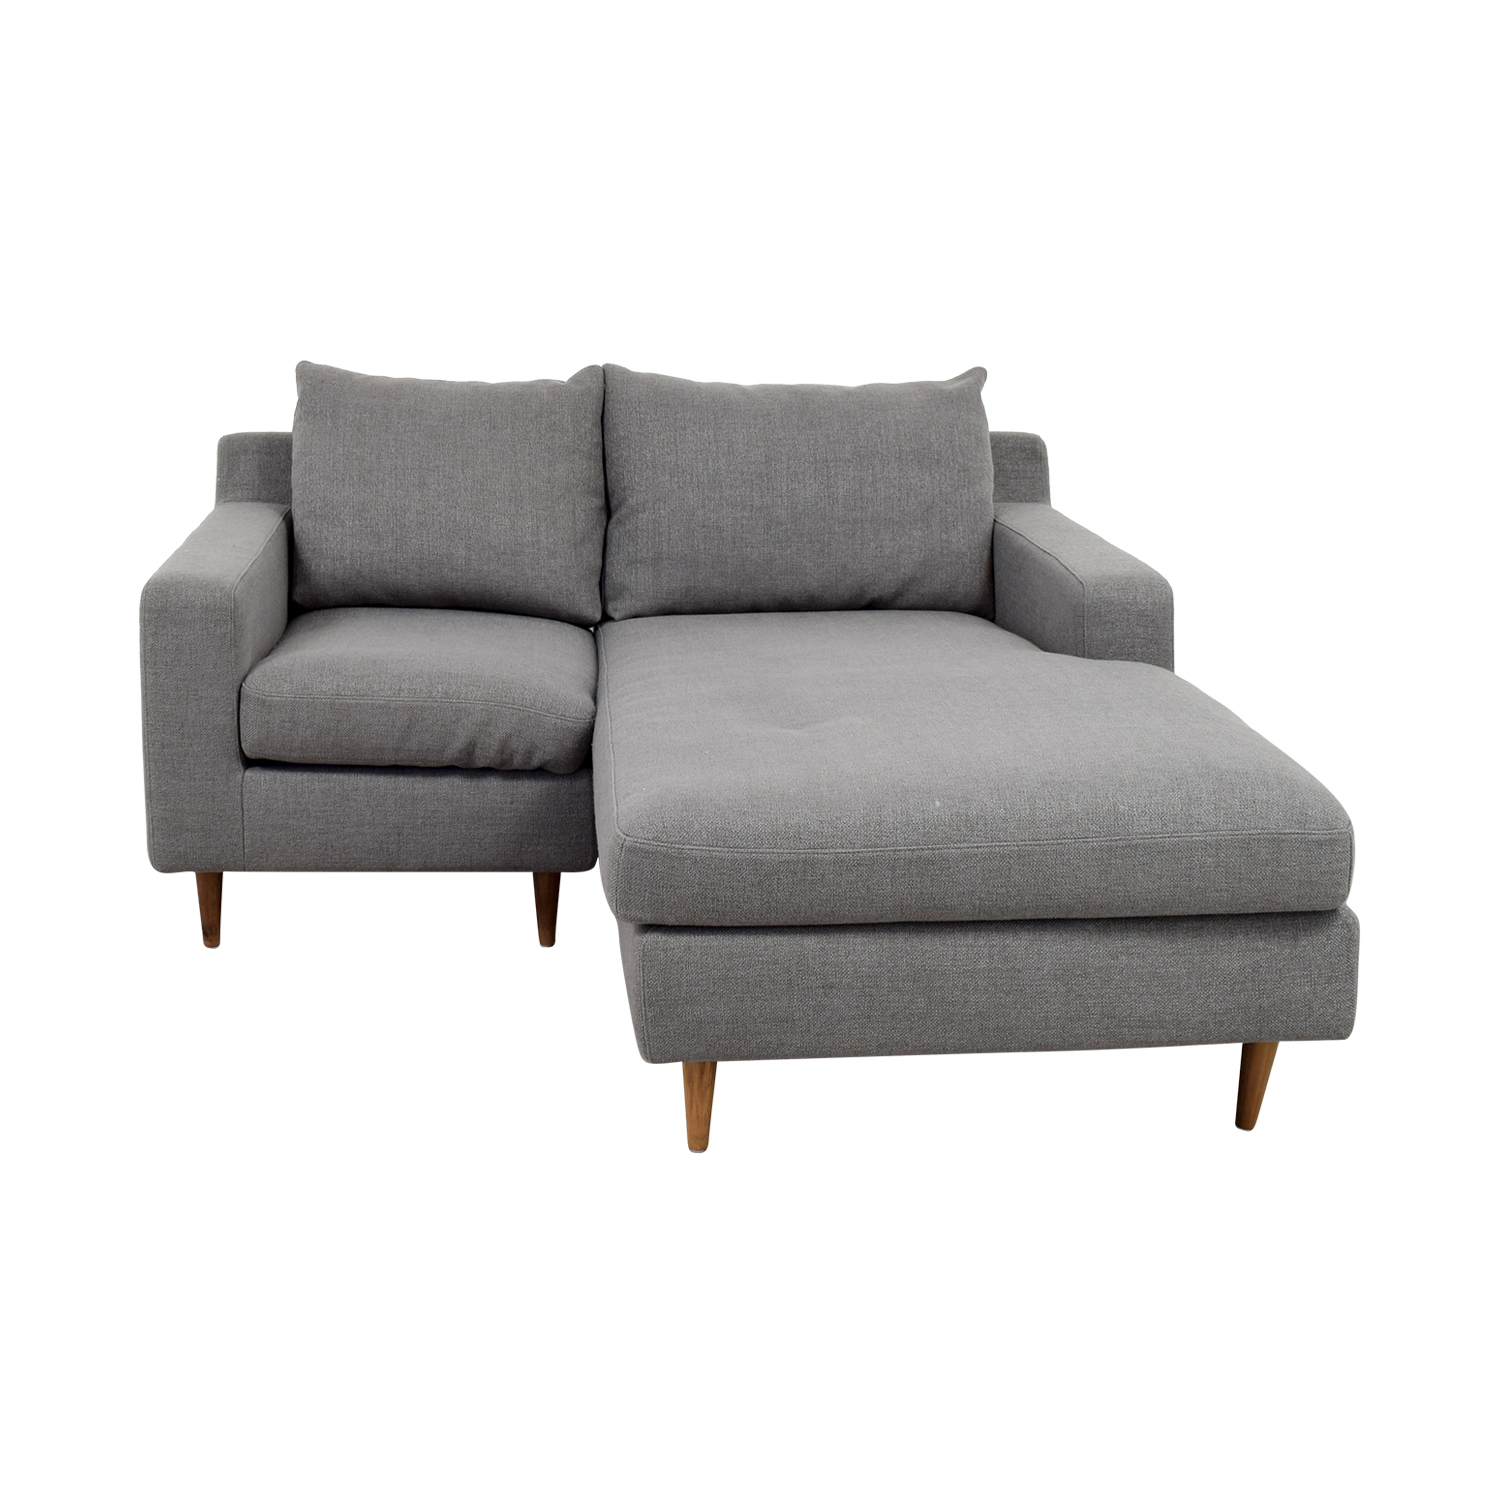 80 Off Interior Define Interior Define Custom Grey Loveseat With Chaise Sofas